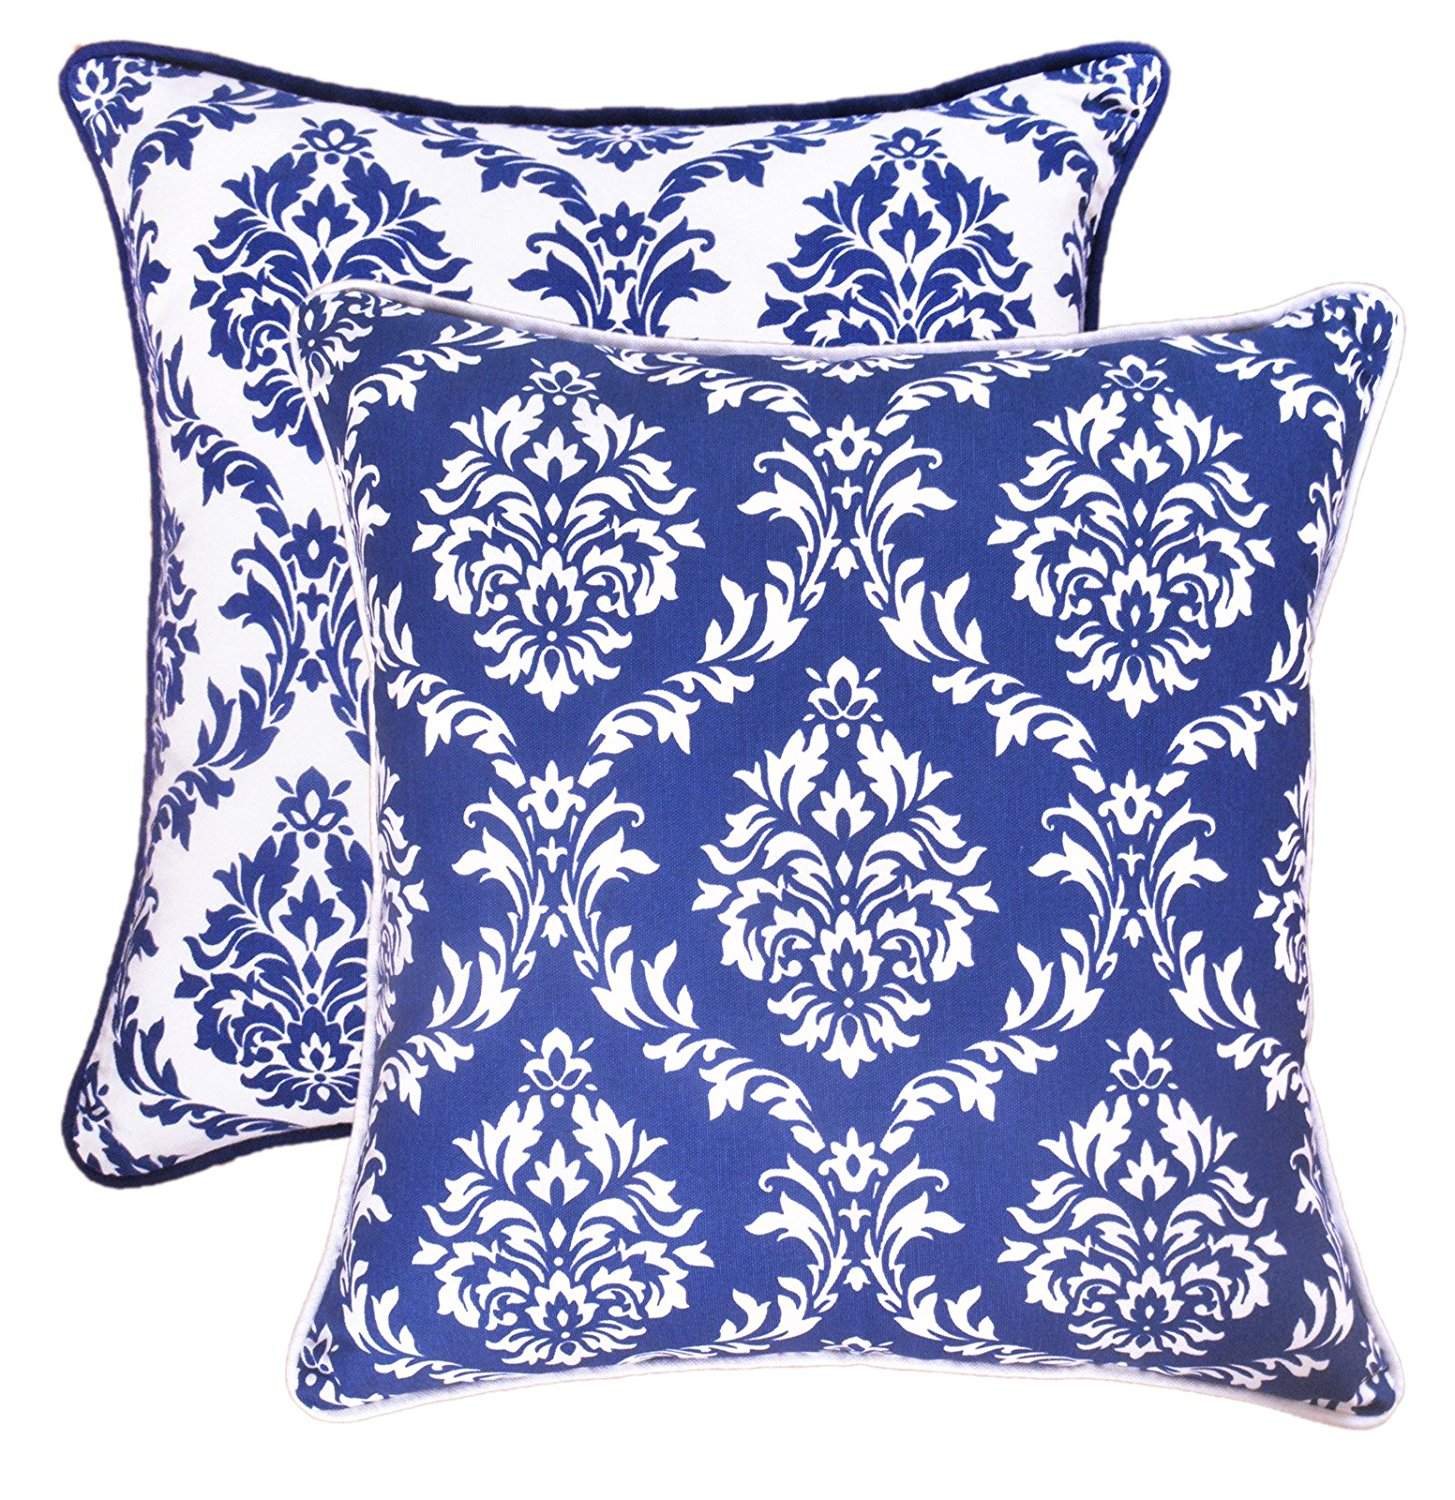 Urban Style Decor, Throw Pillow Cover (Set of 2) Cotton Printed Damask Design Decorative Cushion Covers ( 2 Pillowcases; 18 x 18 inches ; Navy & White)